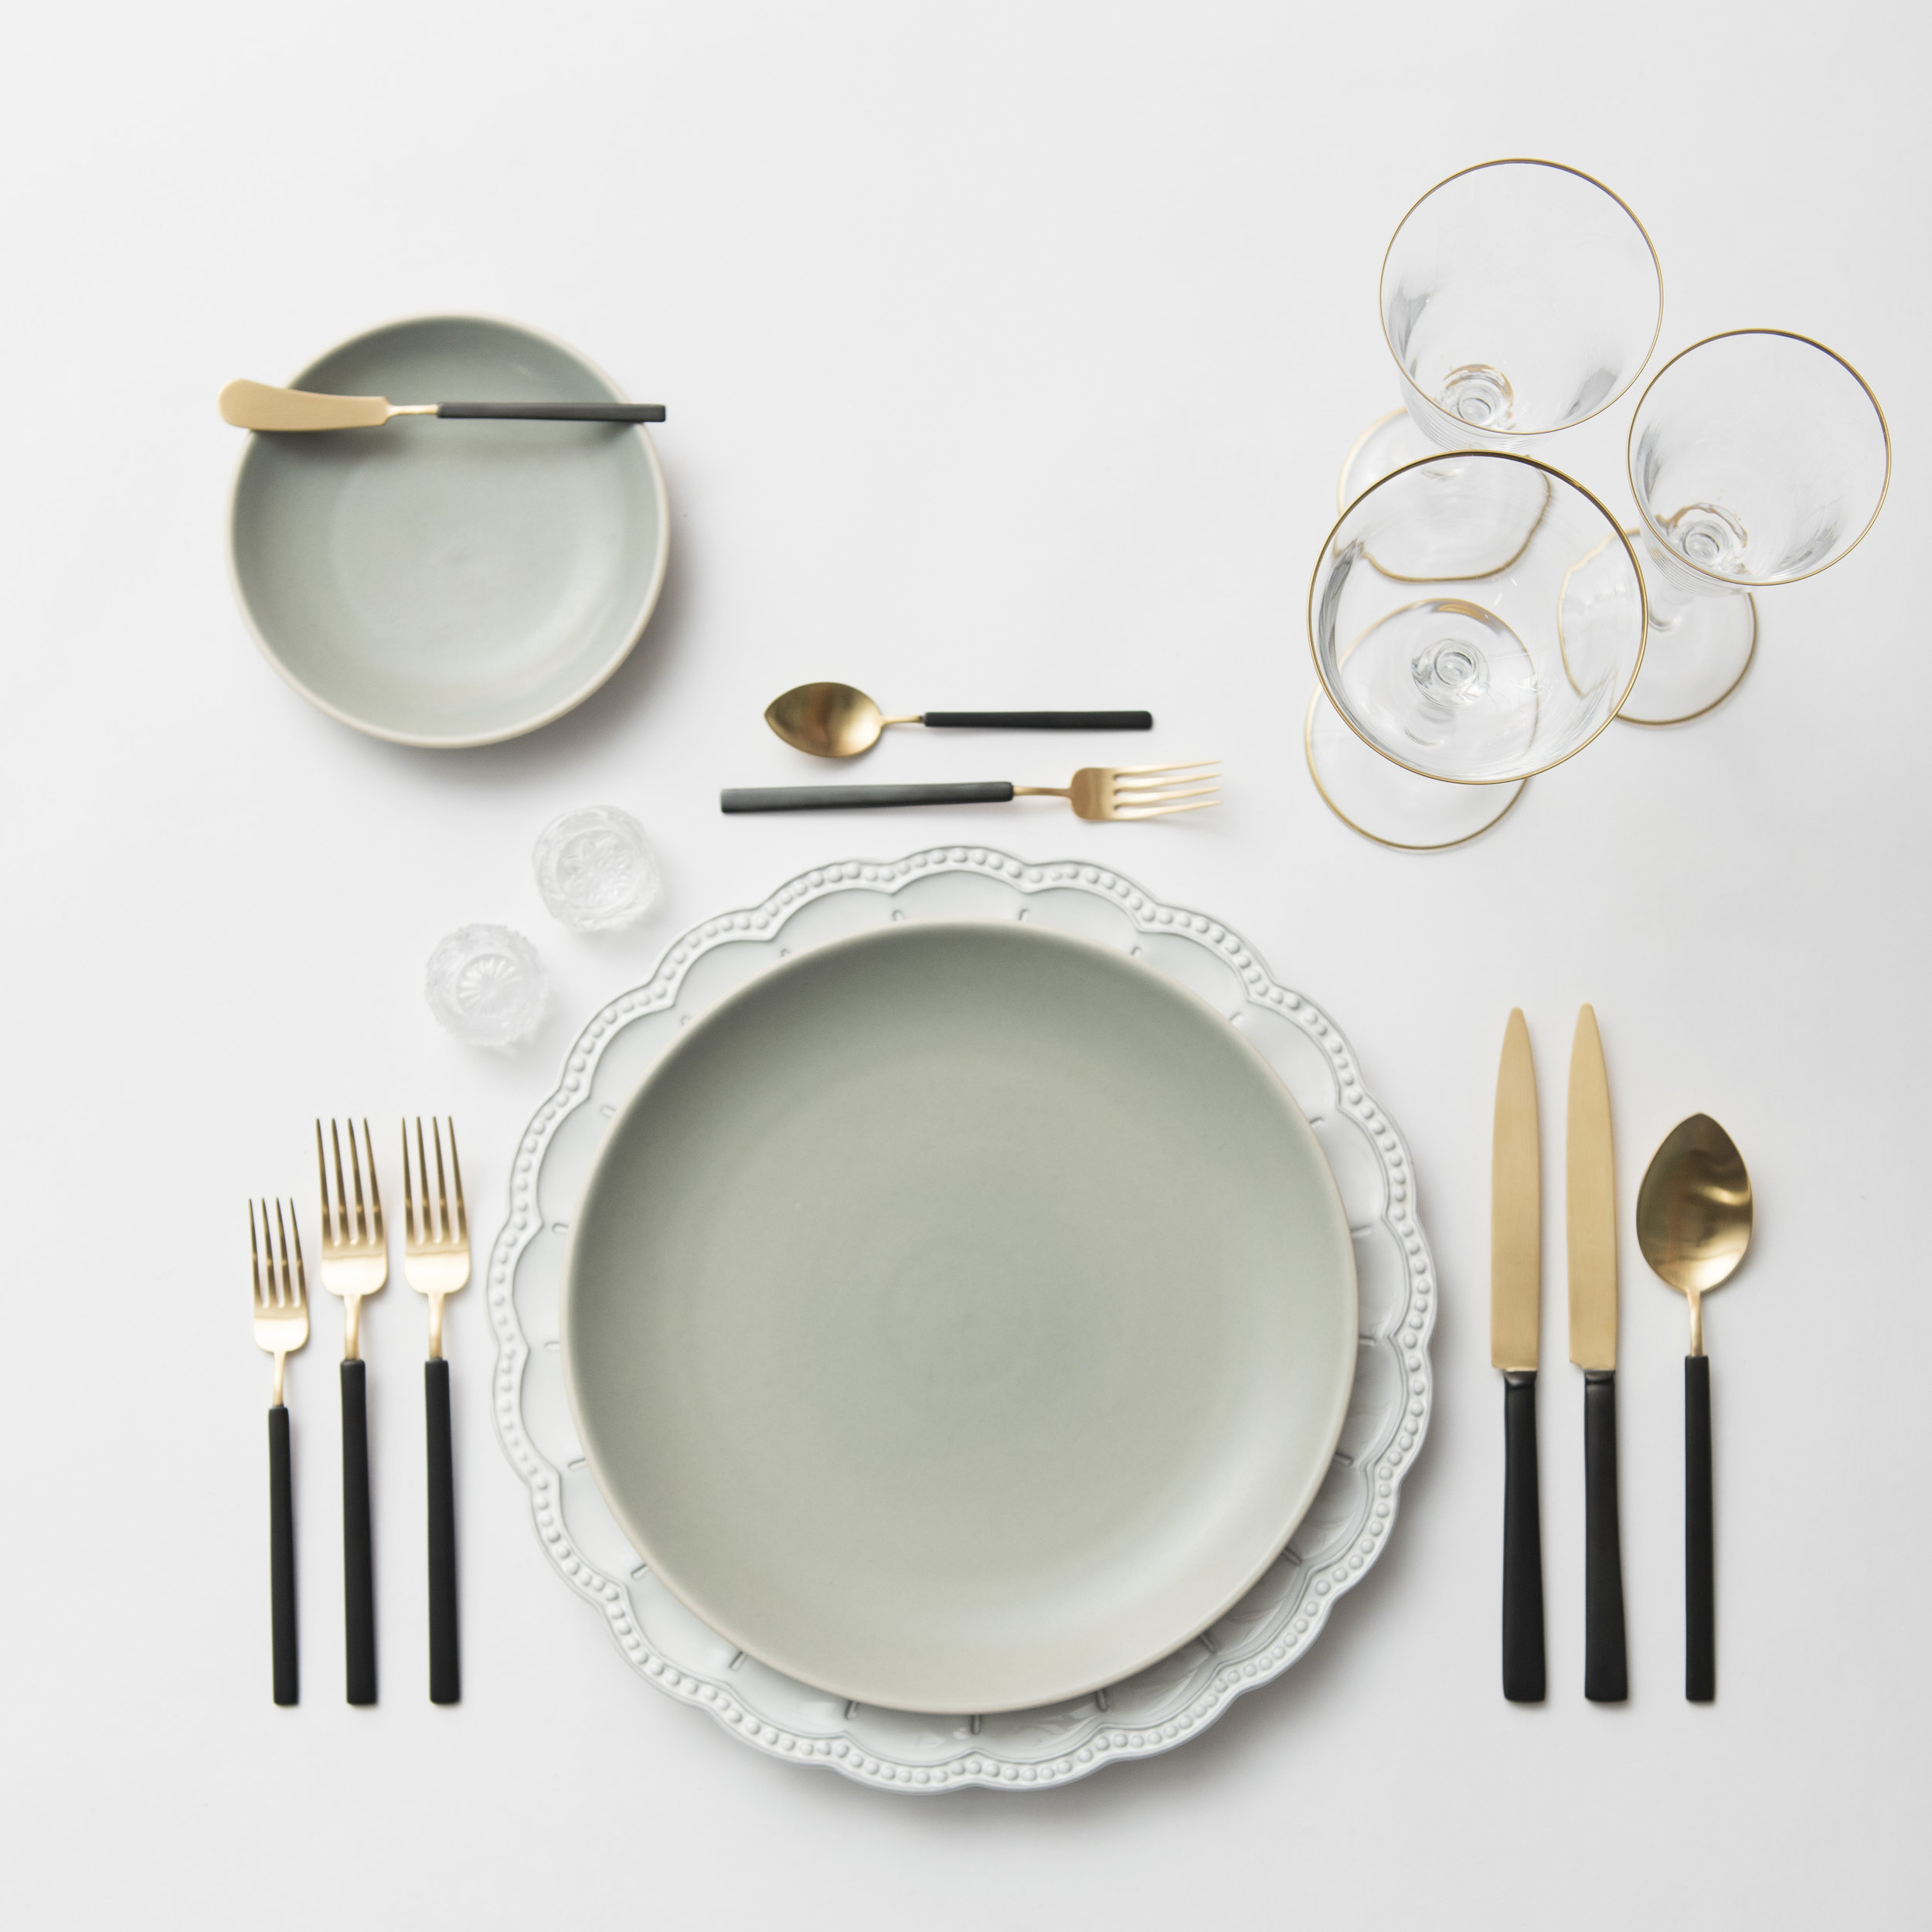 RENT: Signature Collection Chargers + Heath Ceramics in Mist + Axel Flatware in Matte 24k Gold/Black + Chloe 24k Gold Rimmed Stemware + Antique Crystal Salt Cellars  SHOP:Chloe 24k Gold Rimmed Stemware